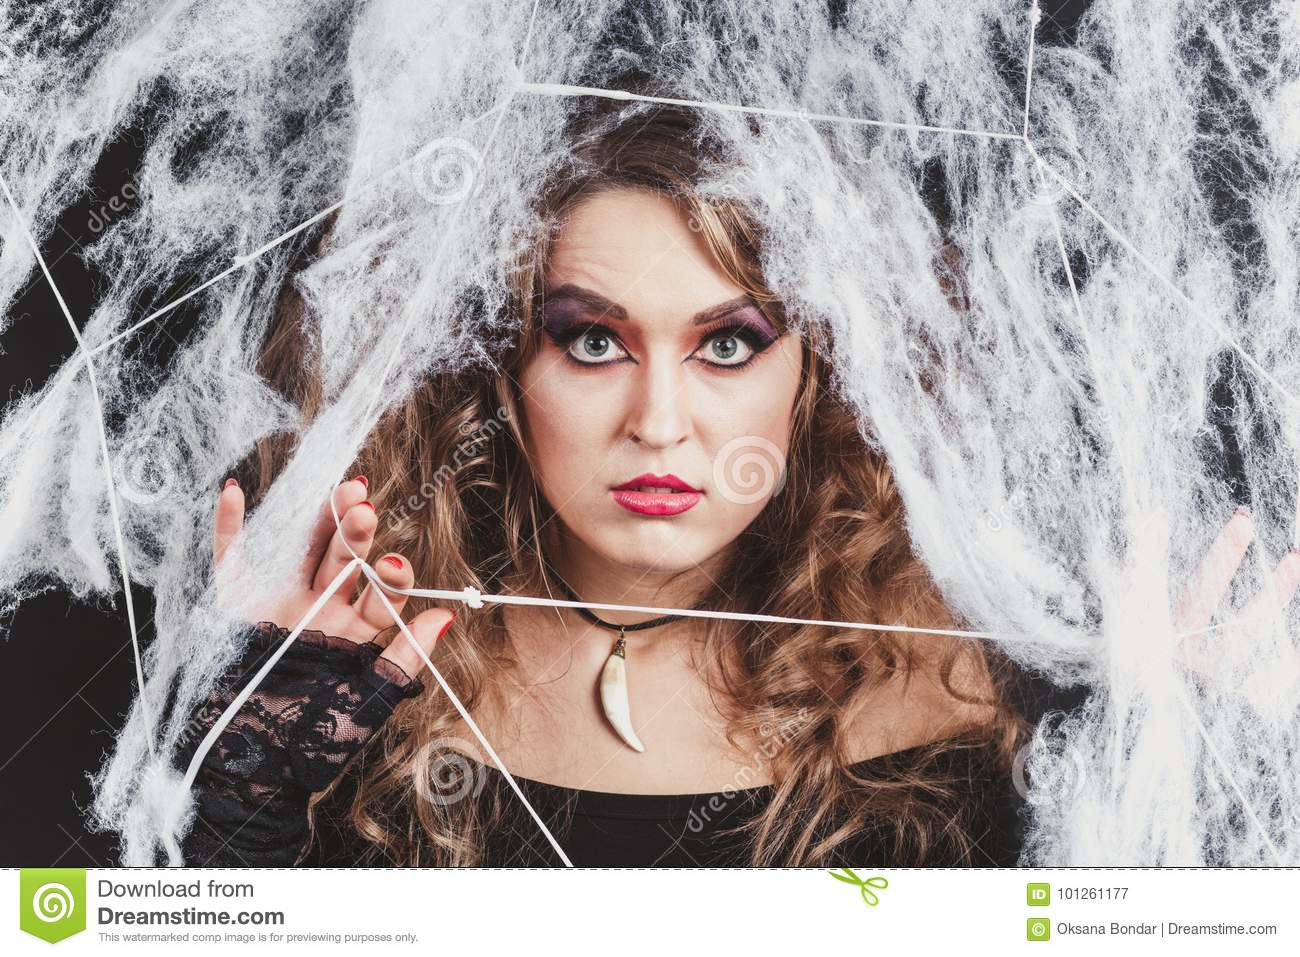 Portrait of Beauty Witch girl caught in a spider web. Fashion Art design. Beautiful Gothic model girl with